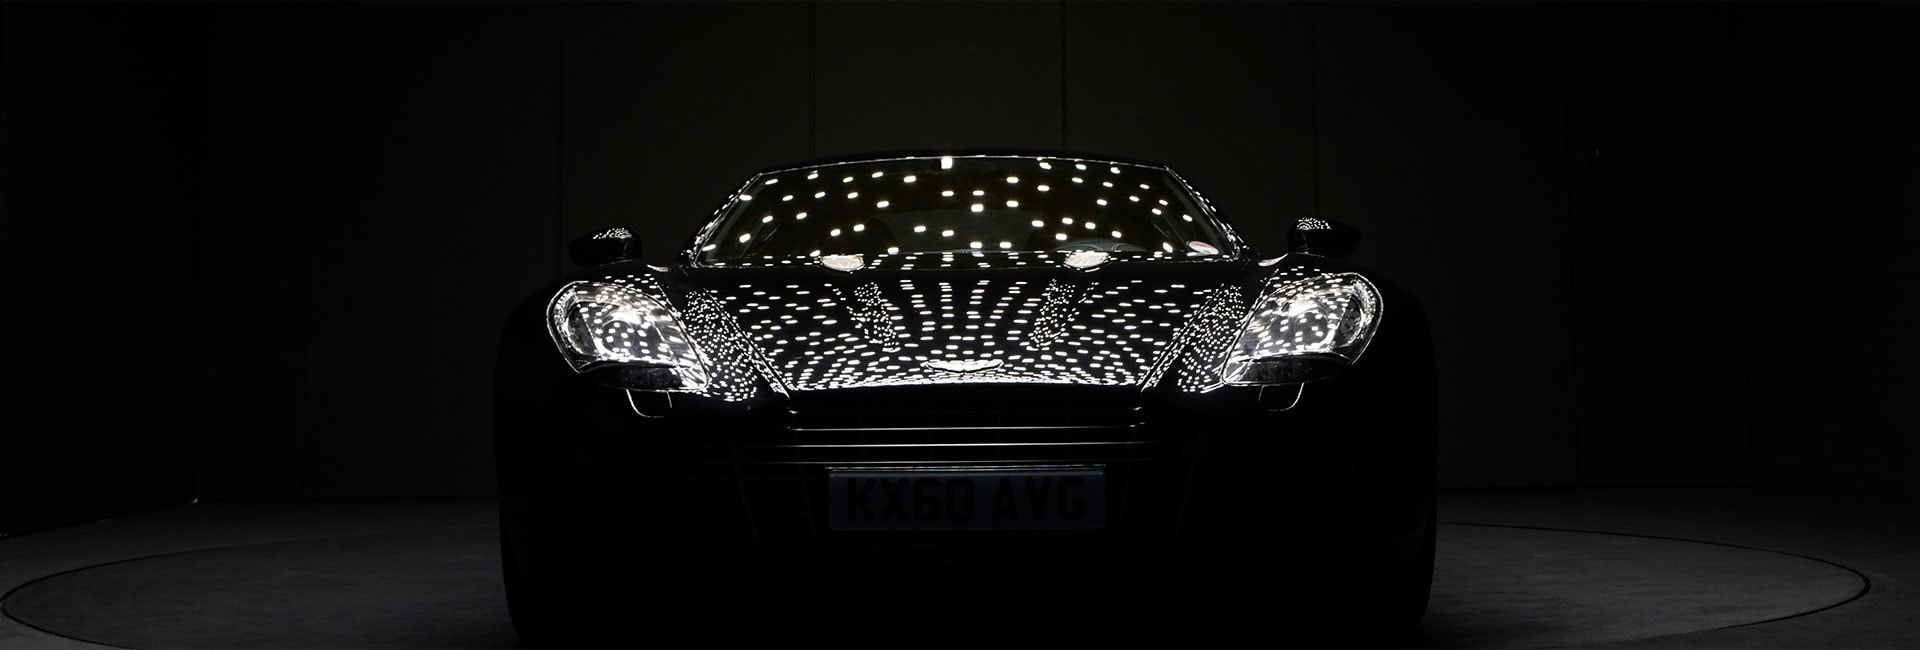 OLEDs reflecting in the car body of Aston Martin One-77